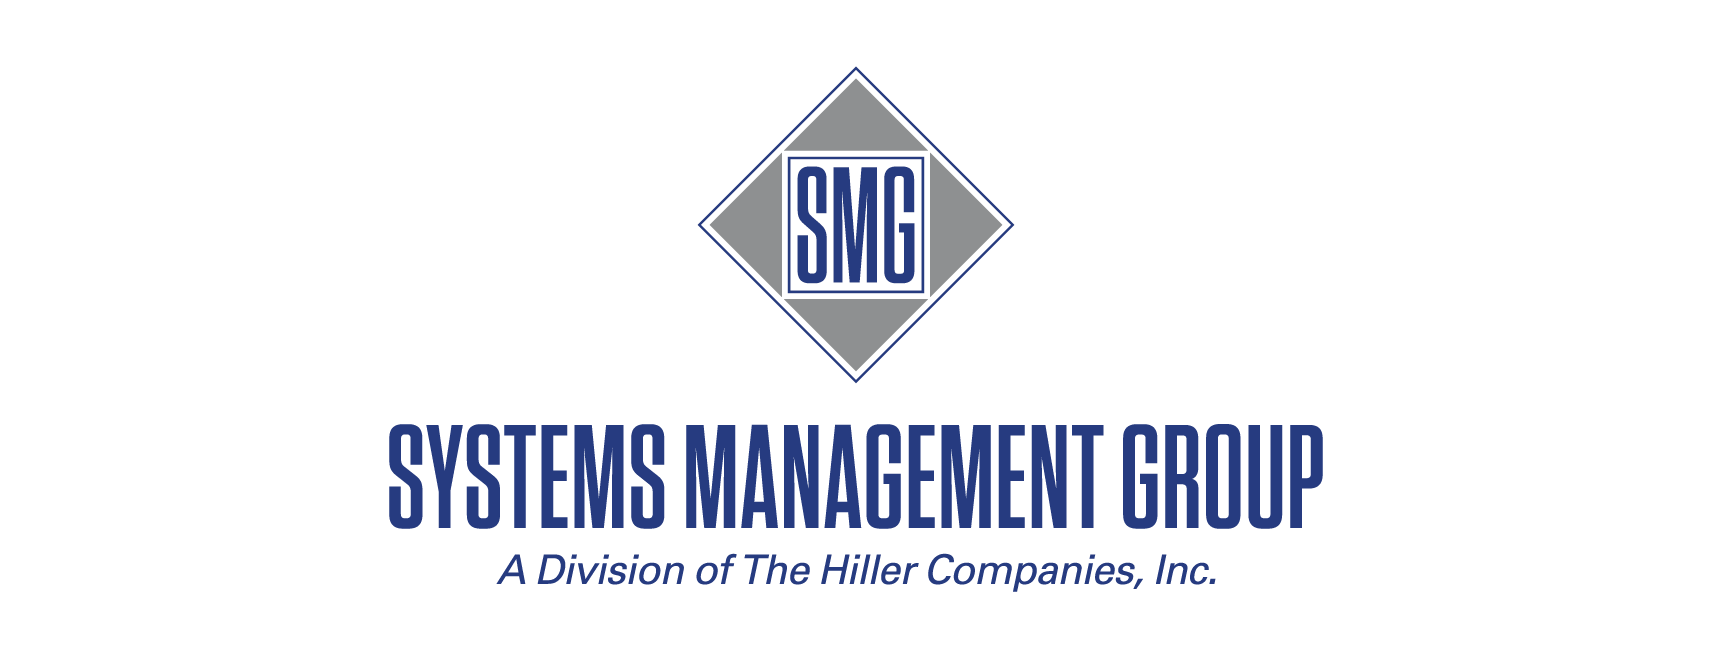 The Hiller Companies purchases Systems Management Group based in Denver, Colorado.